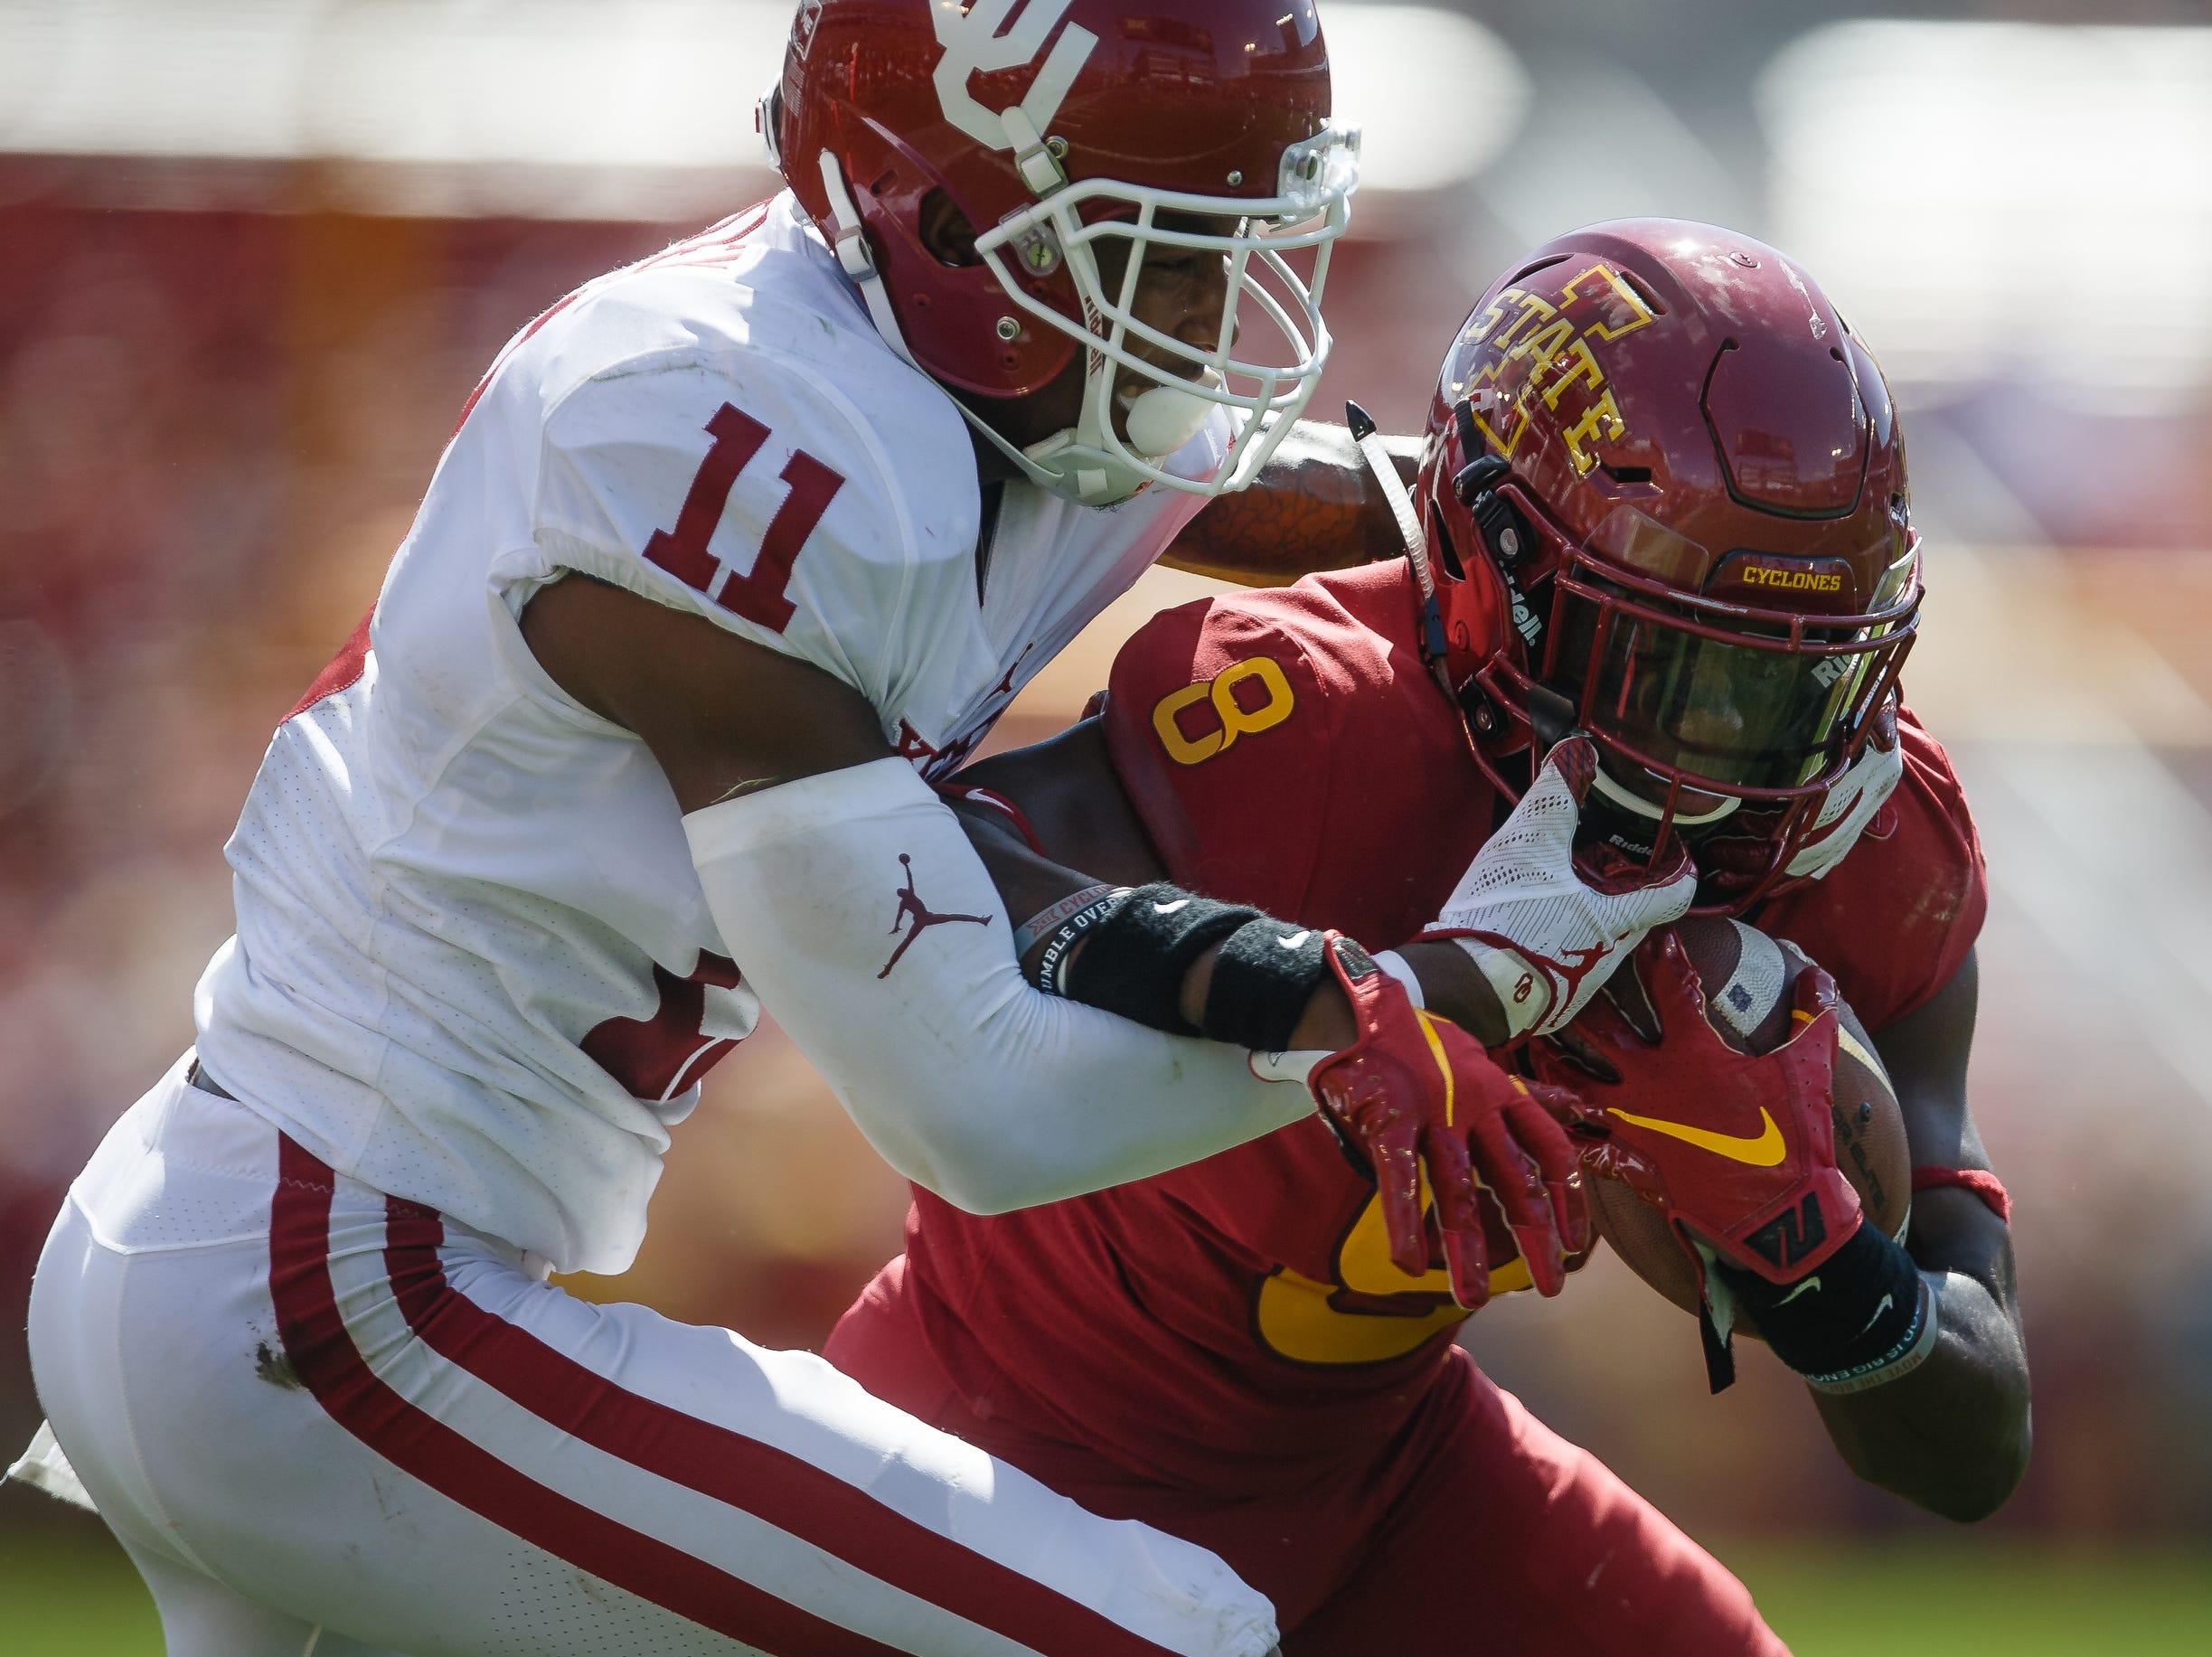 Iowa State's Deshaunte Jones (8) is tackled by Oklahoma's Parnell Motley (11) during their football game at Jack Trice Stadium on Saturday, Sept. 15, 2018 in Ames. Oklahoma would go on to win 37-27.